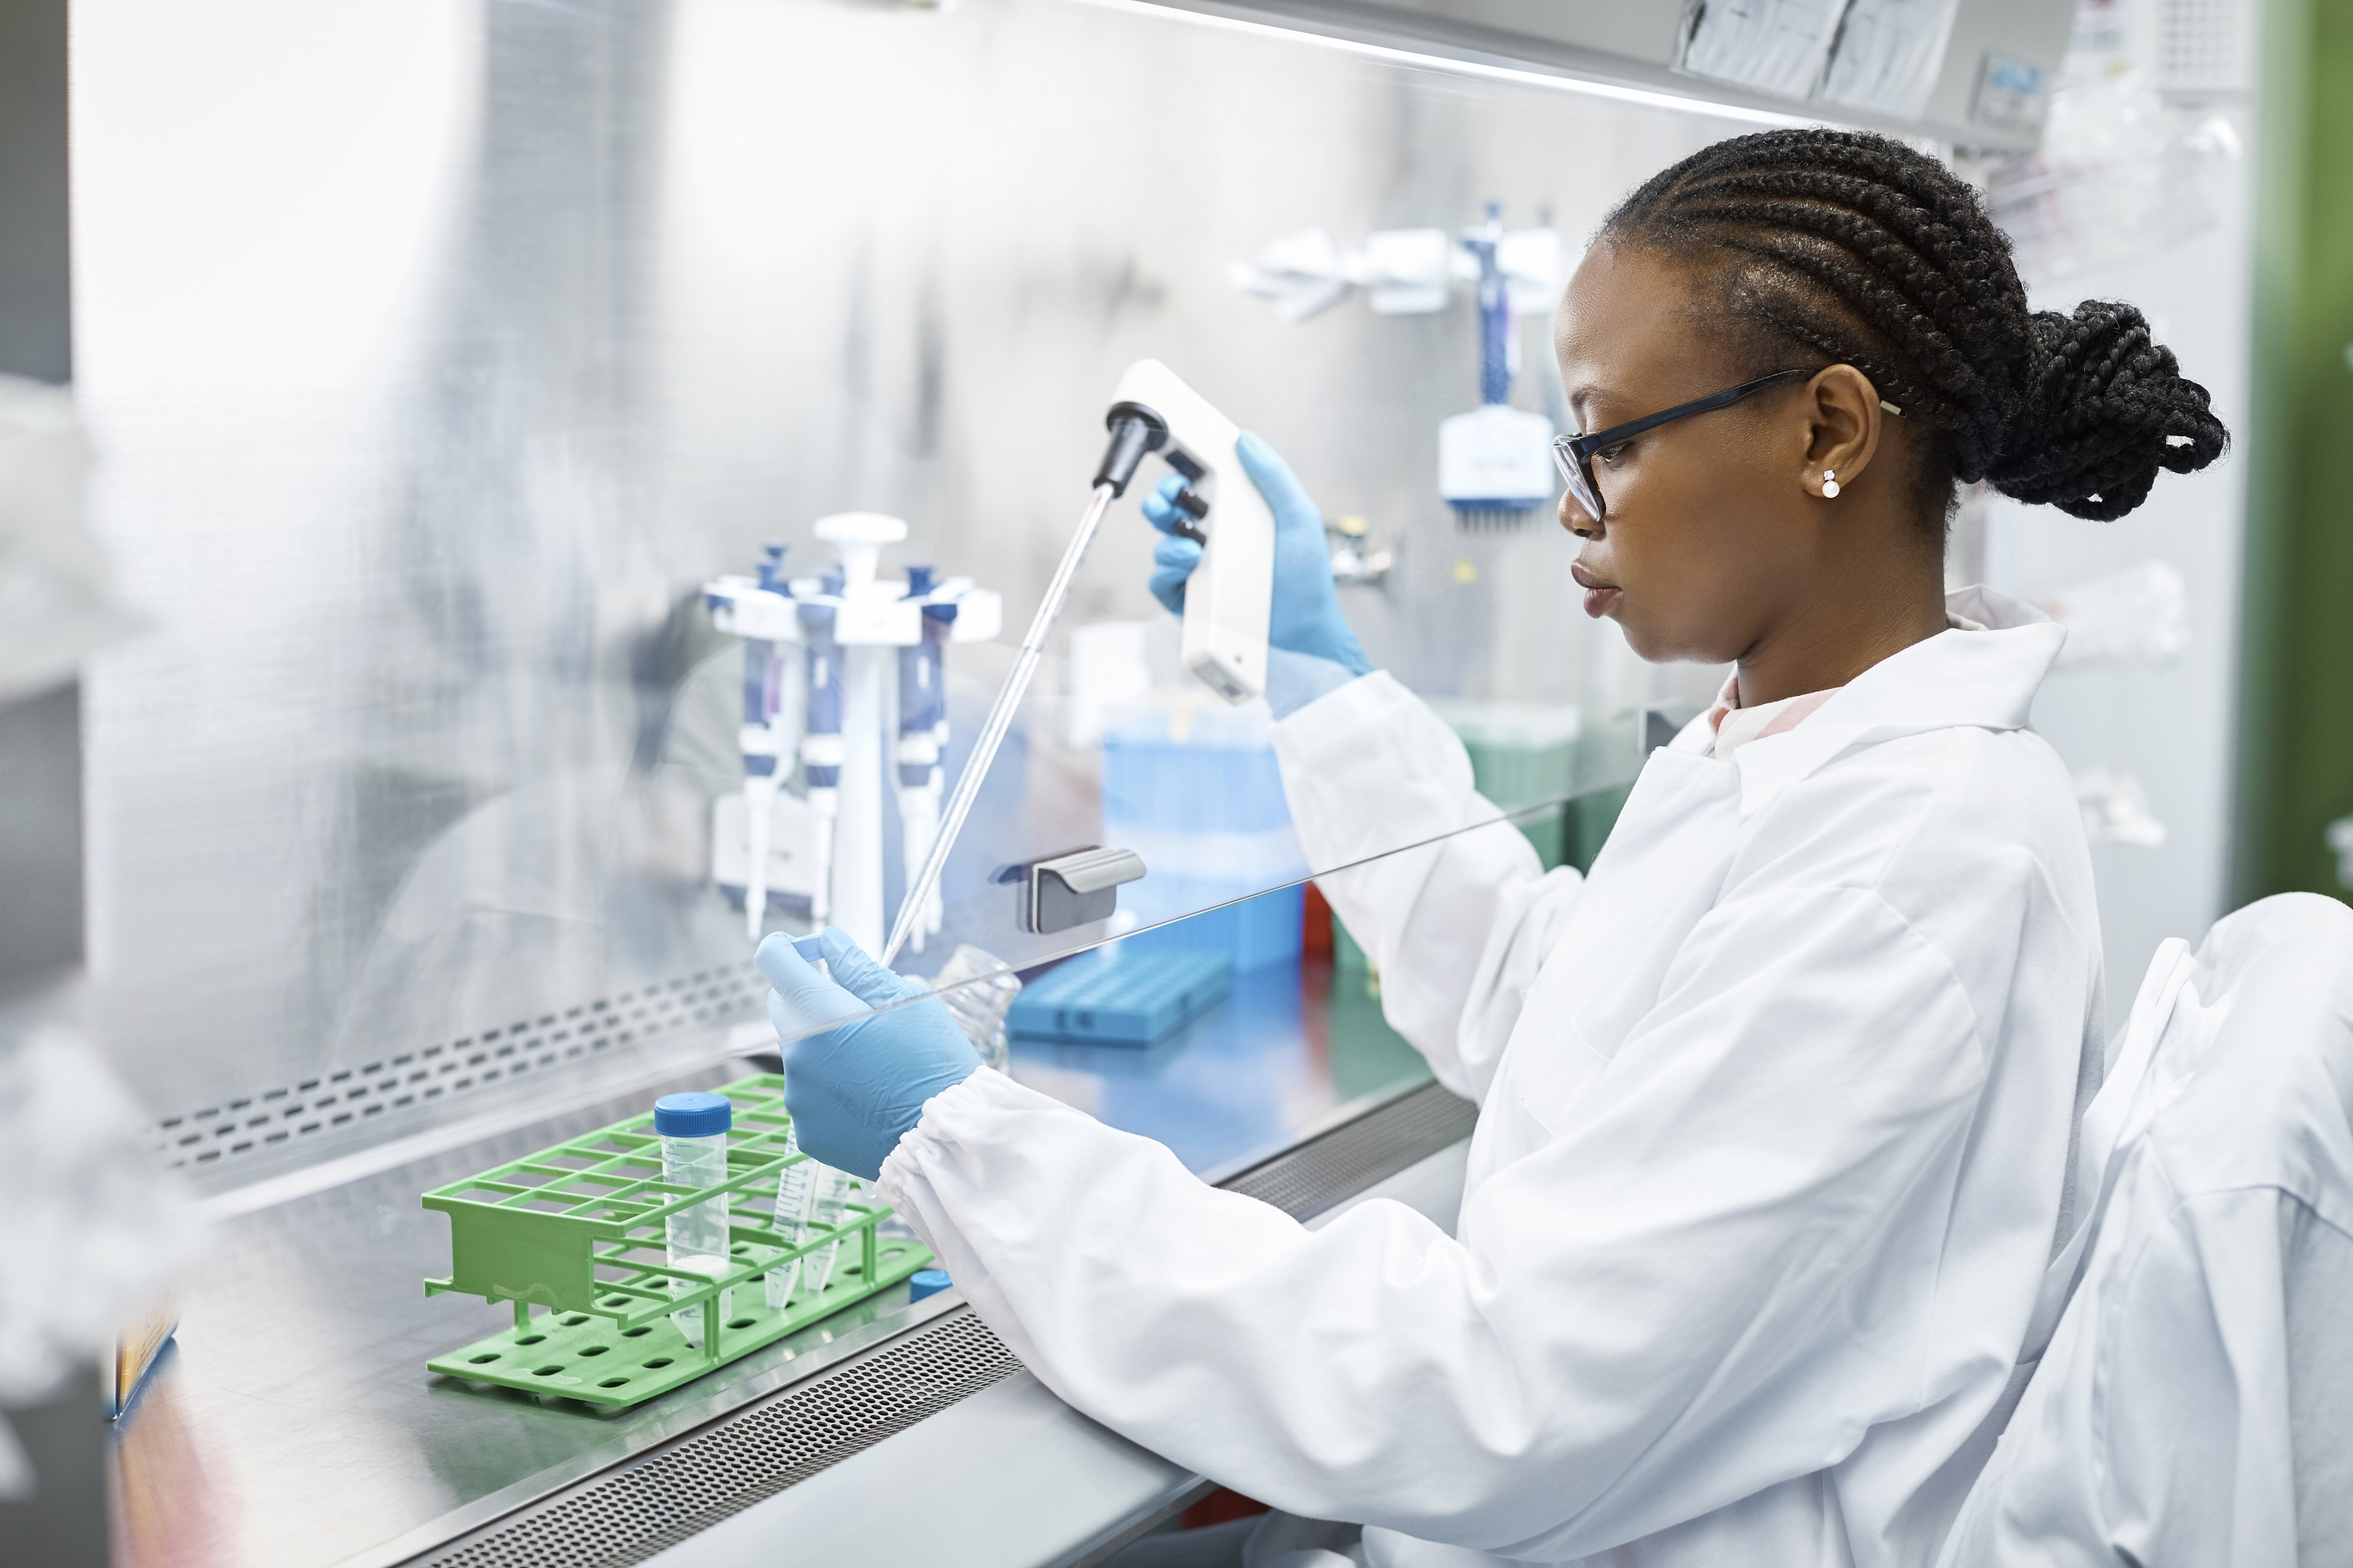 scientist-analyzing-medical-sample-in-laboratory